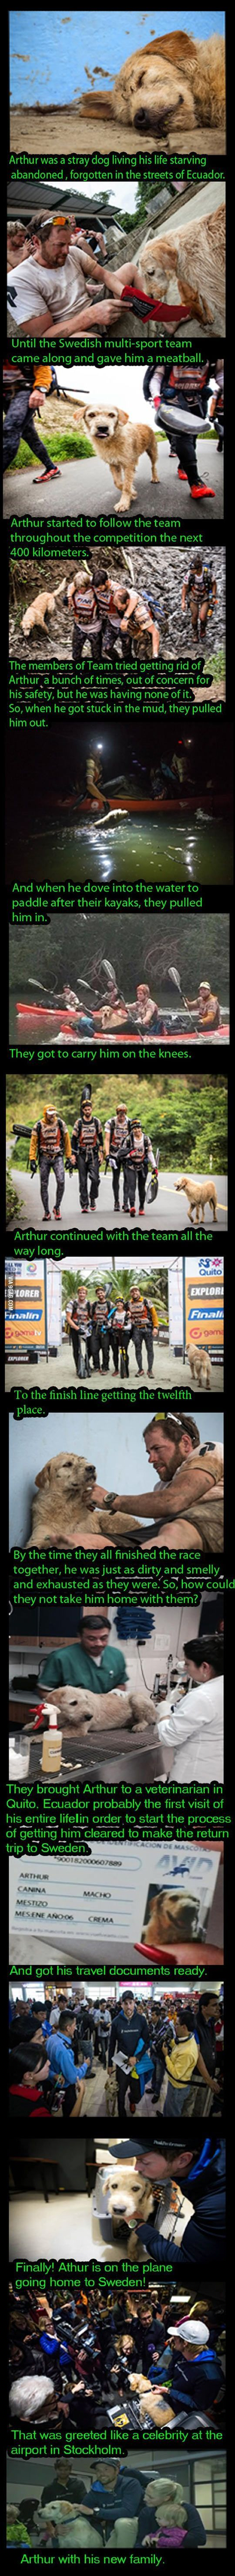 Arthur's amazing journey from slums to stardom ...For more funny dogs visit www.bestfunnyjokes4u.com/